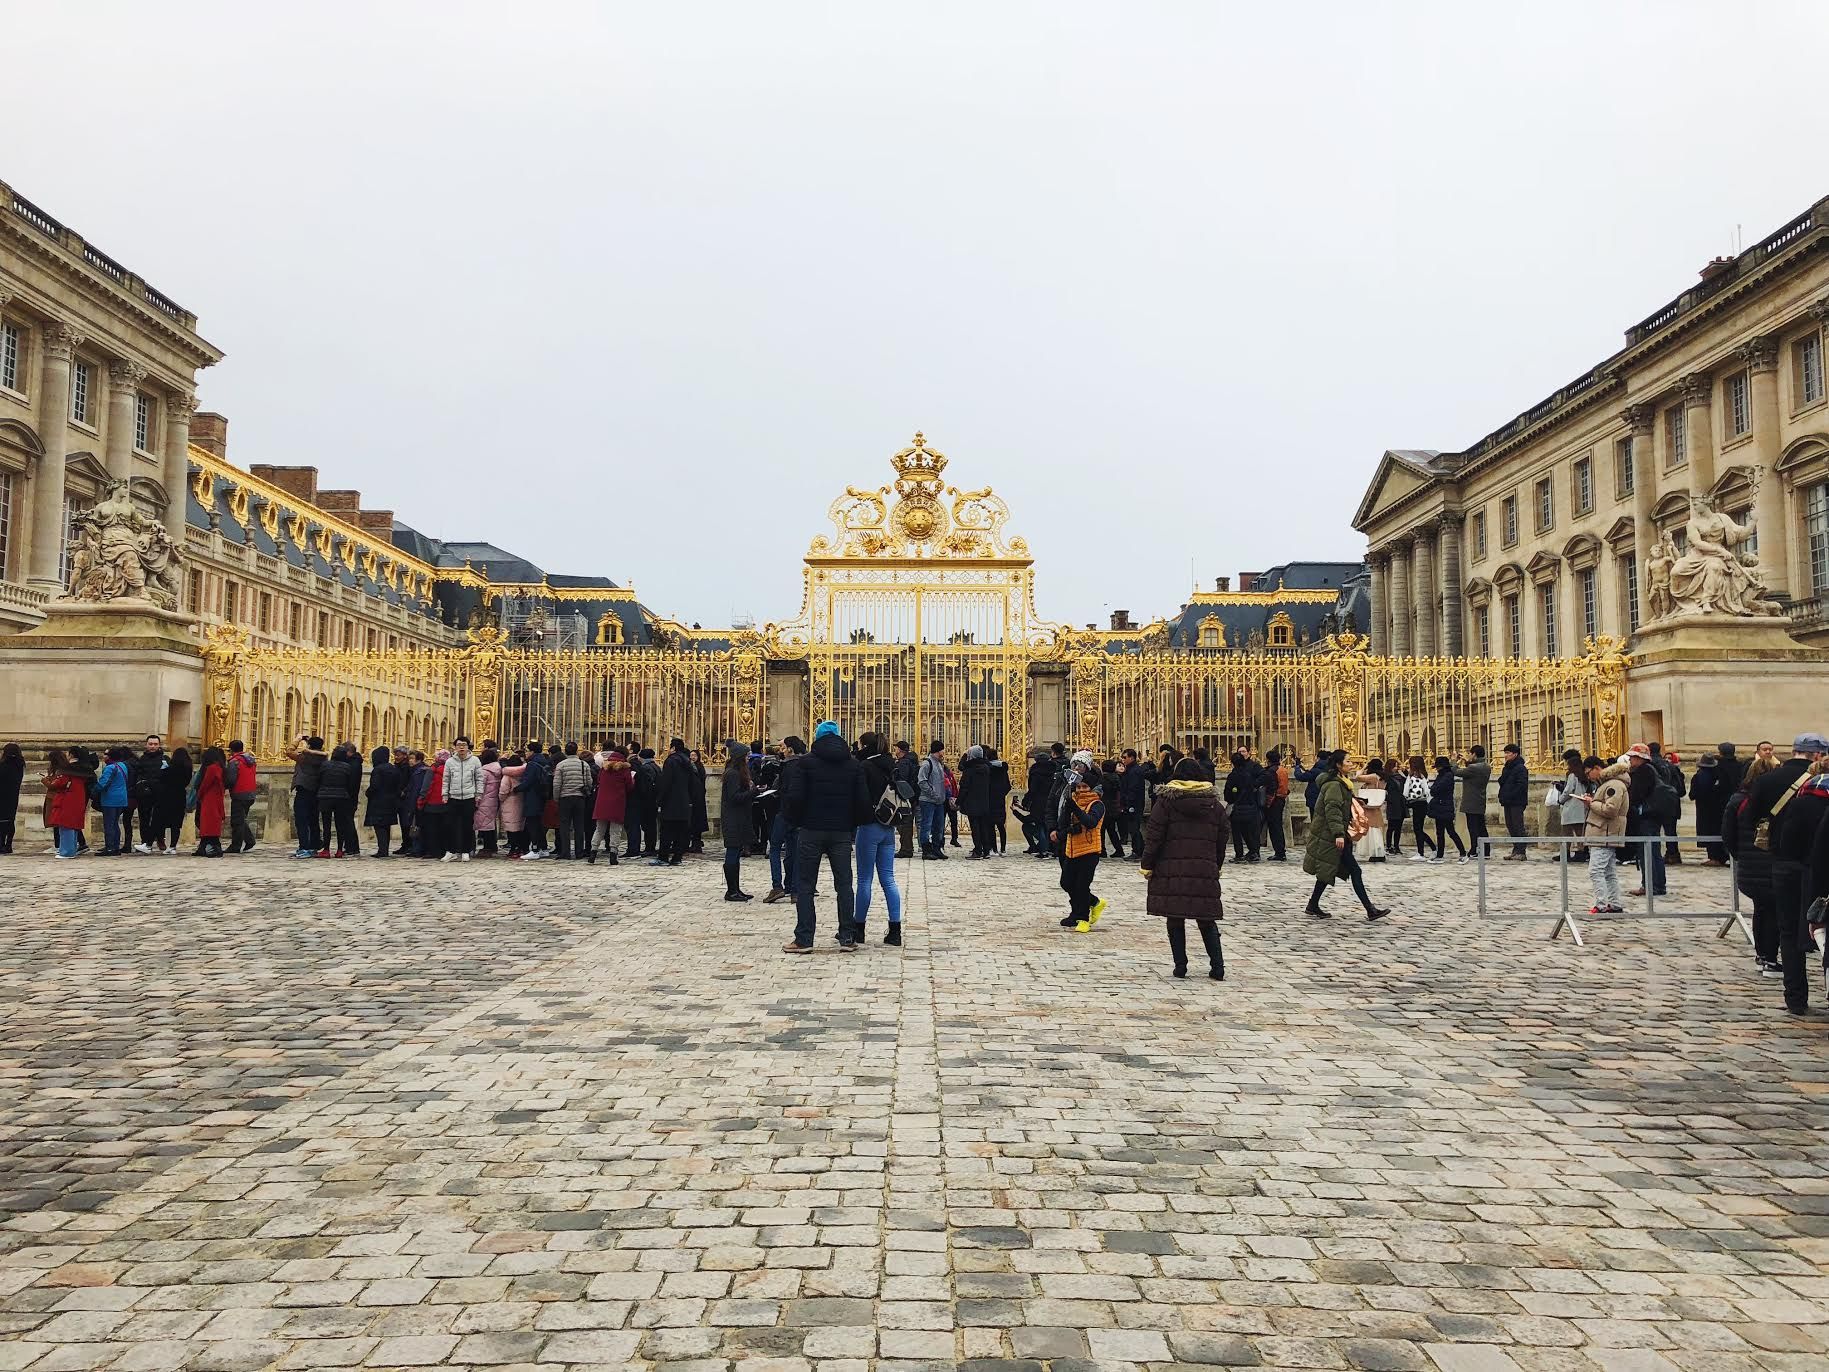 Muslim-travel-guide-Paris-Palace-of-Versailles-gates.jpg